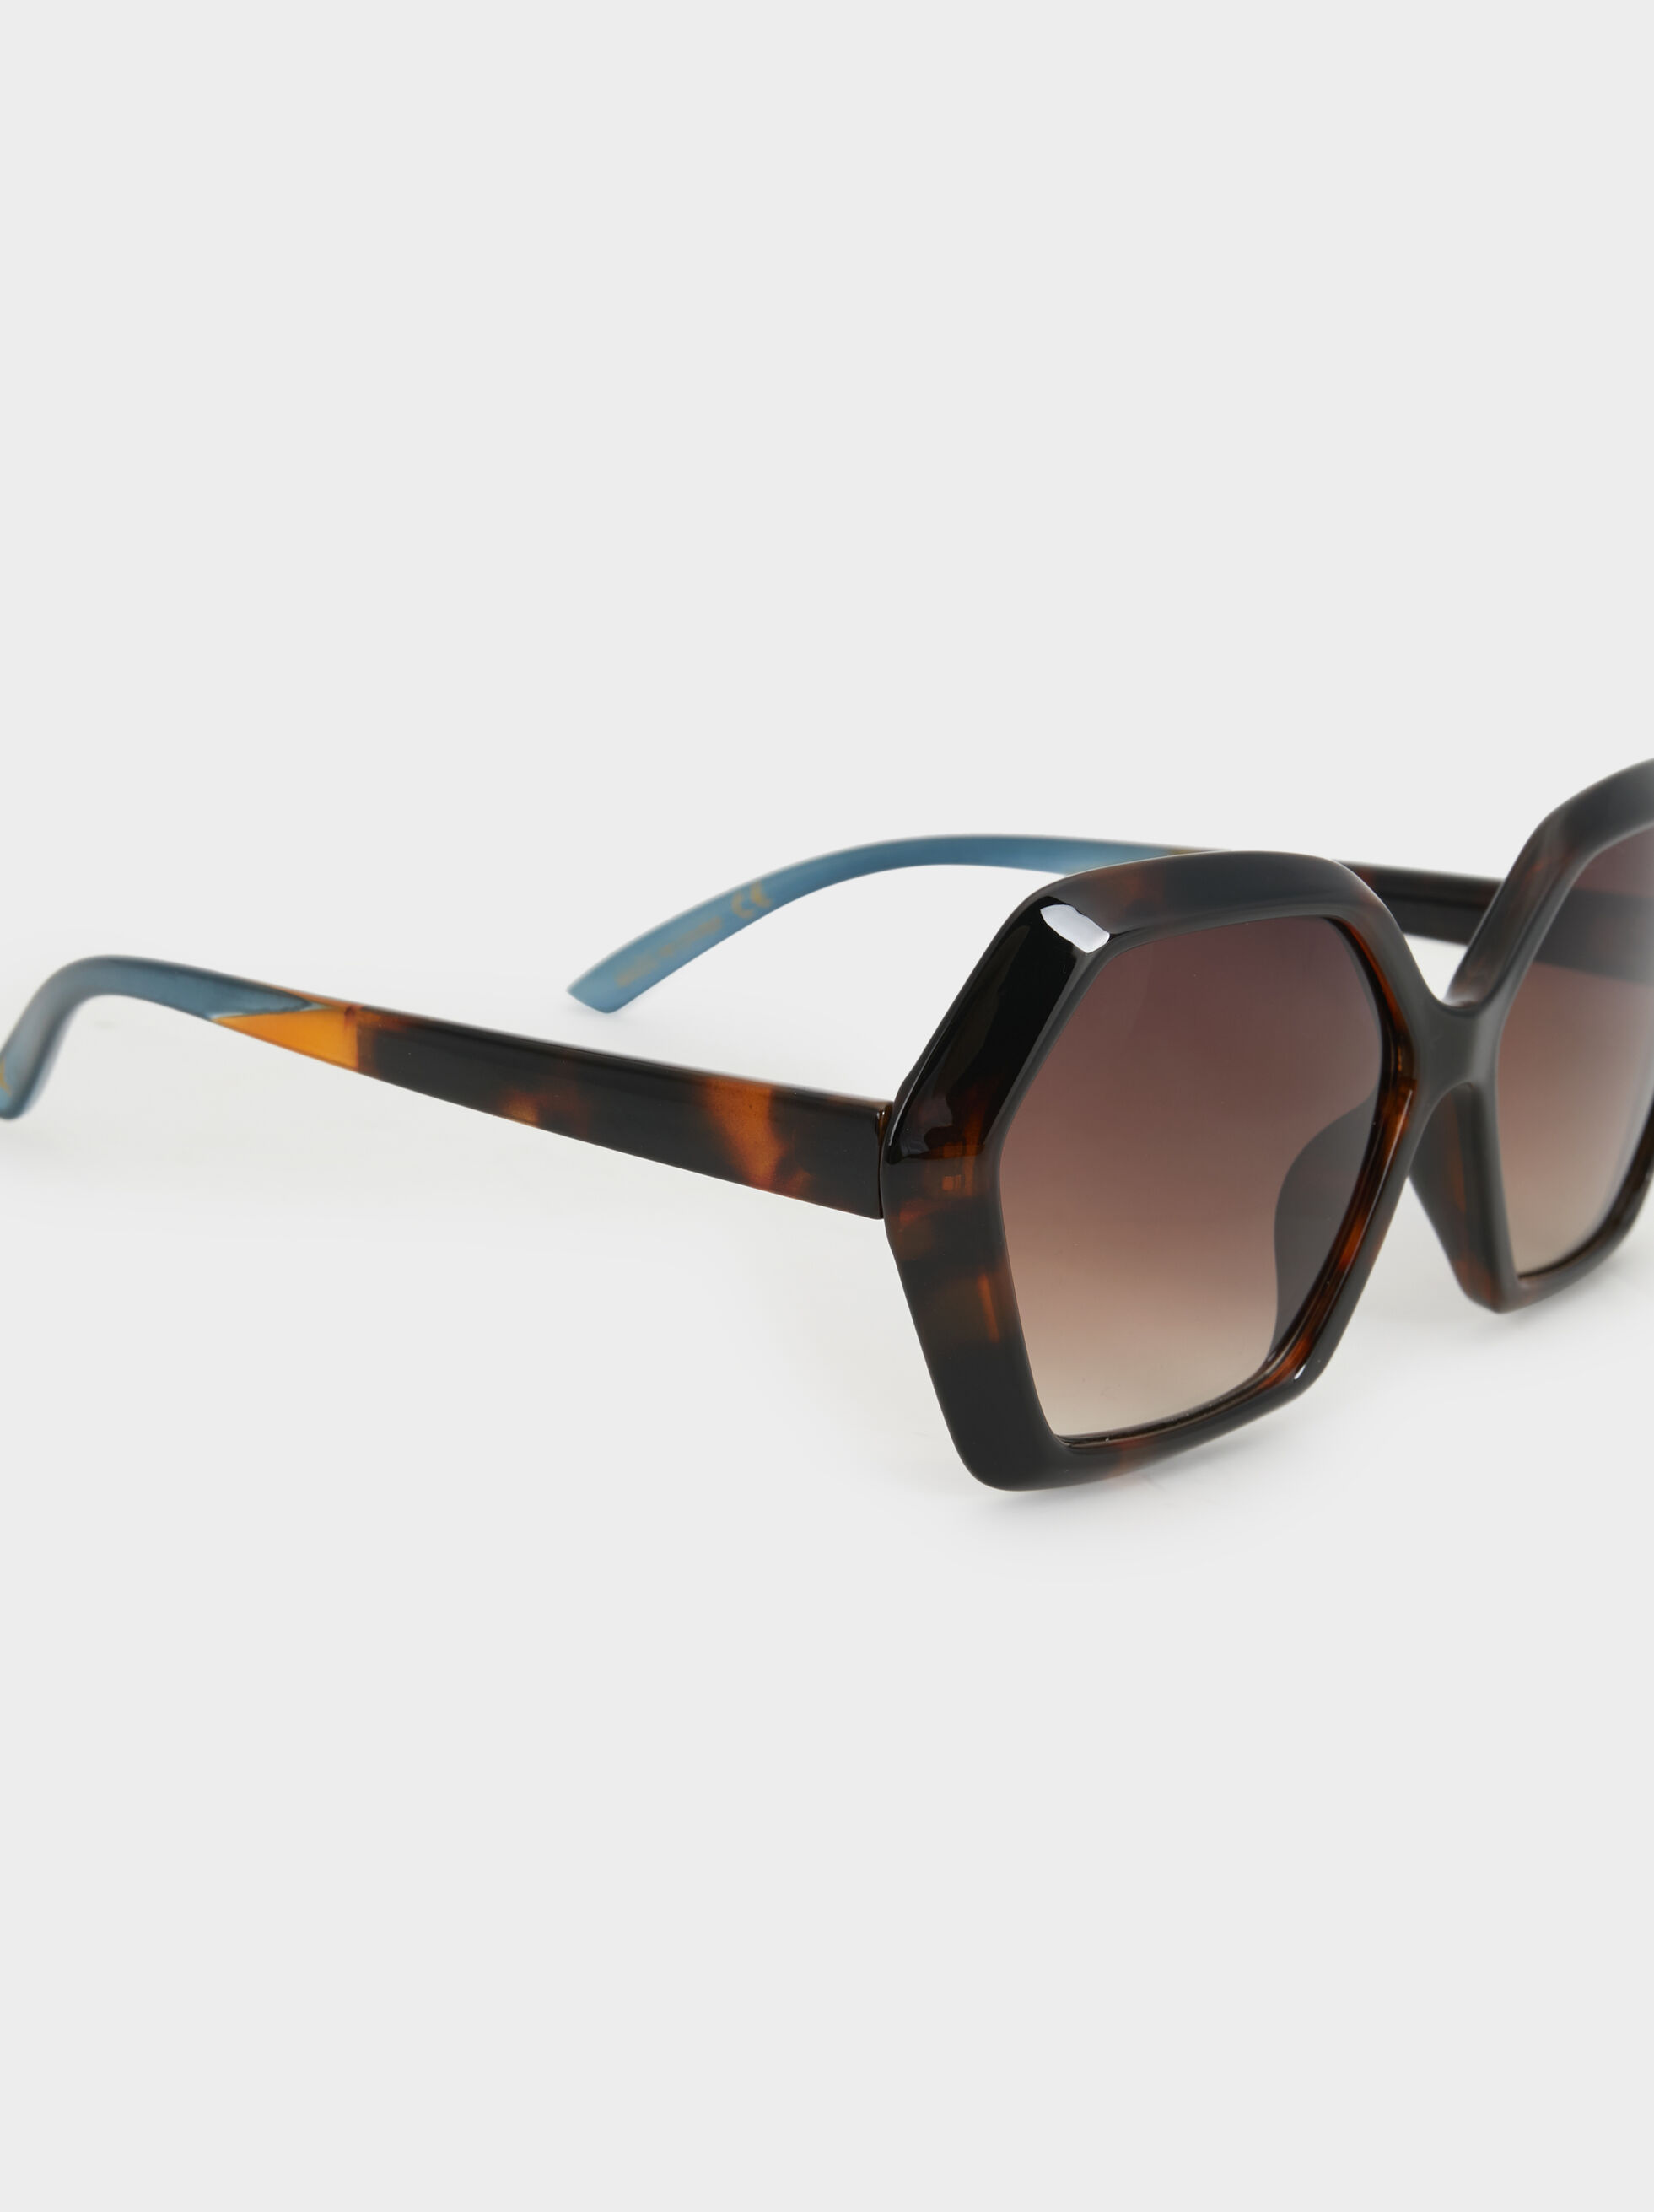 Tortoiseshell Geometric Sunglasses, Multicolor, hi-res